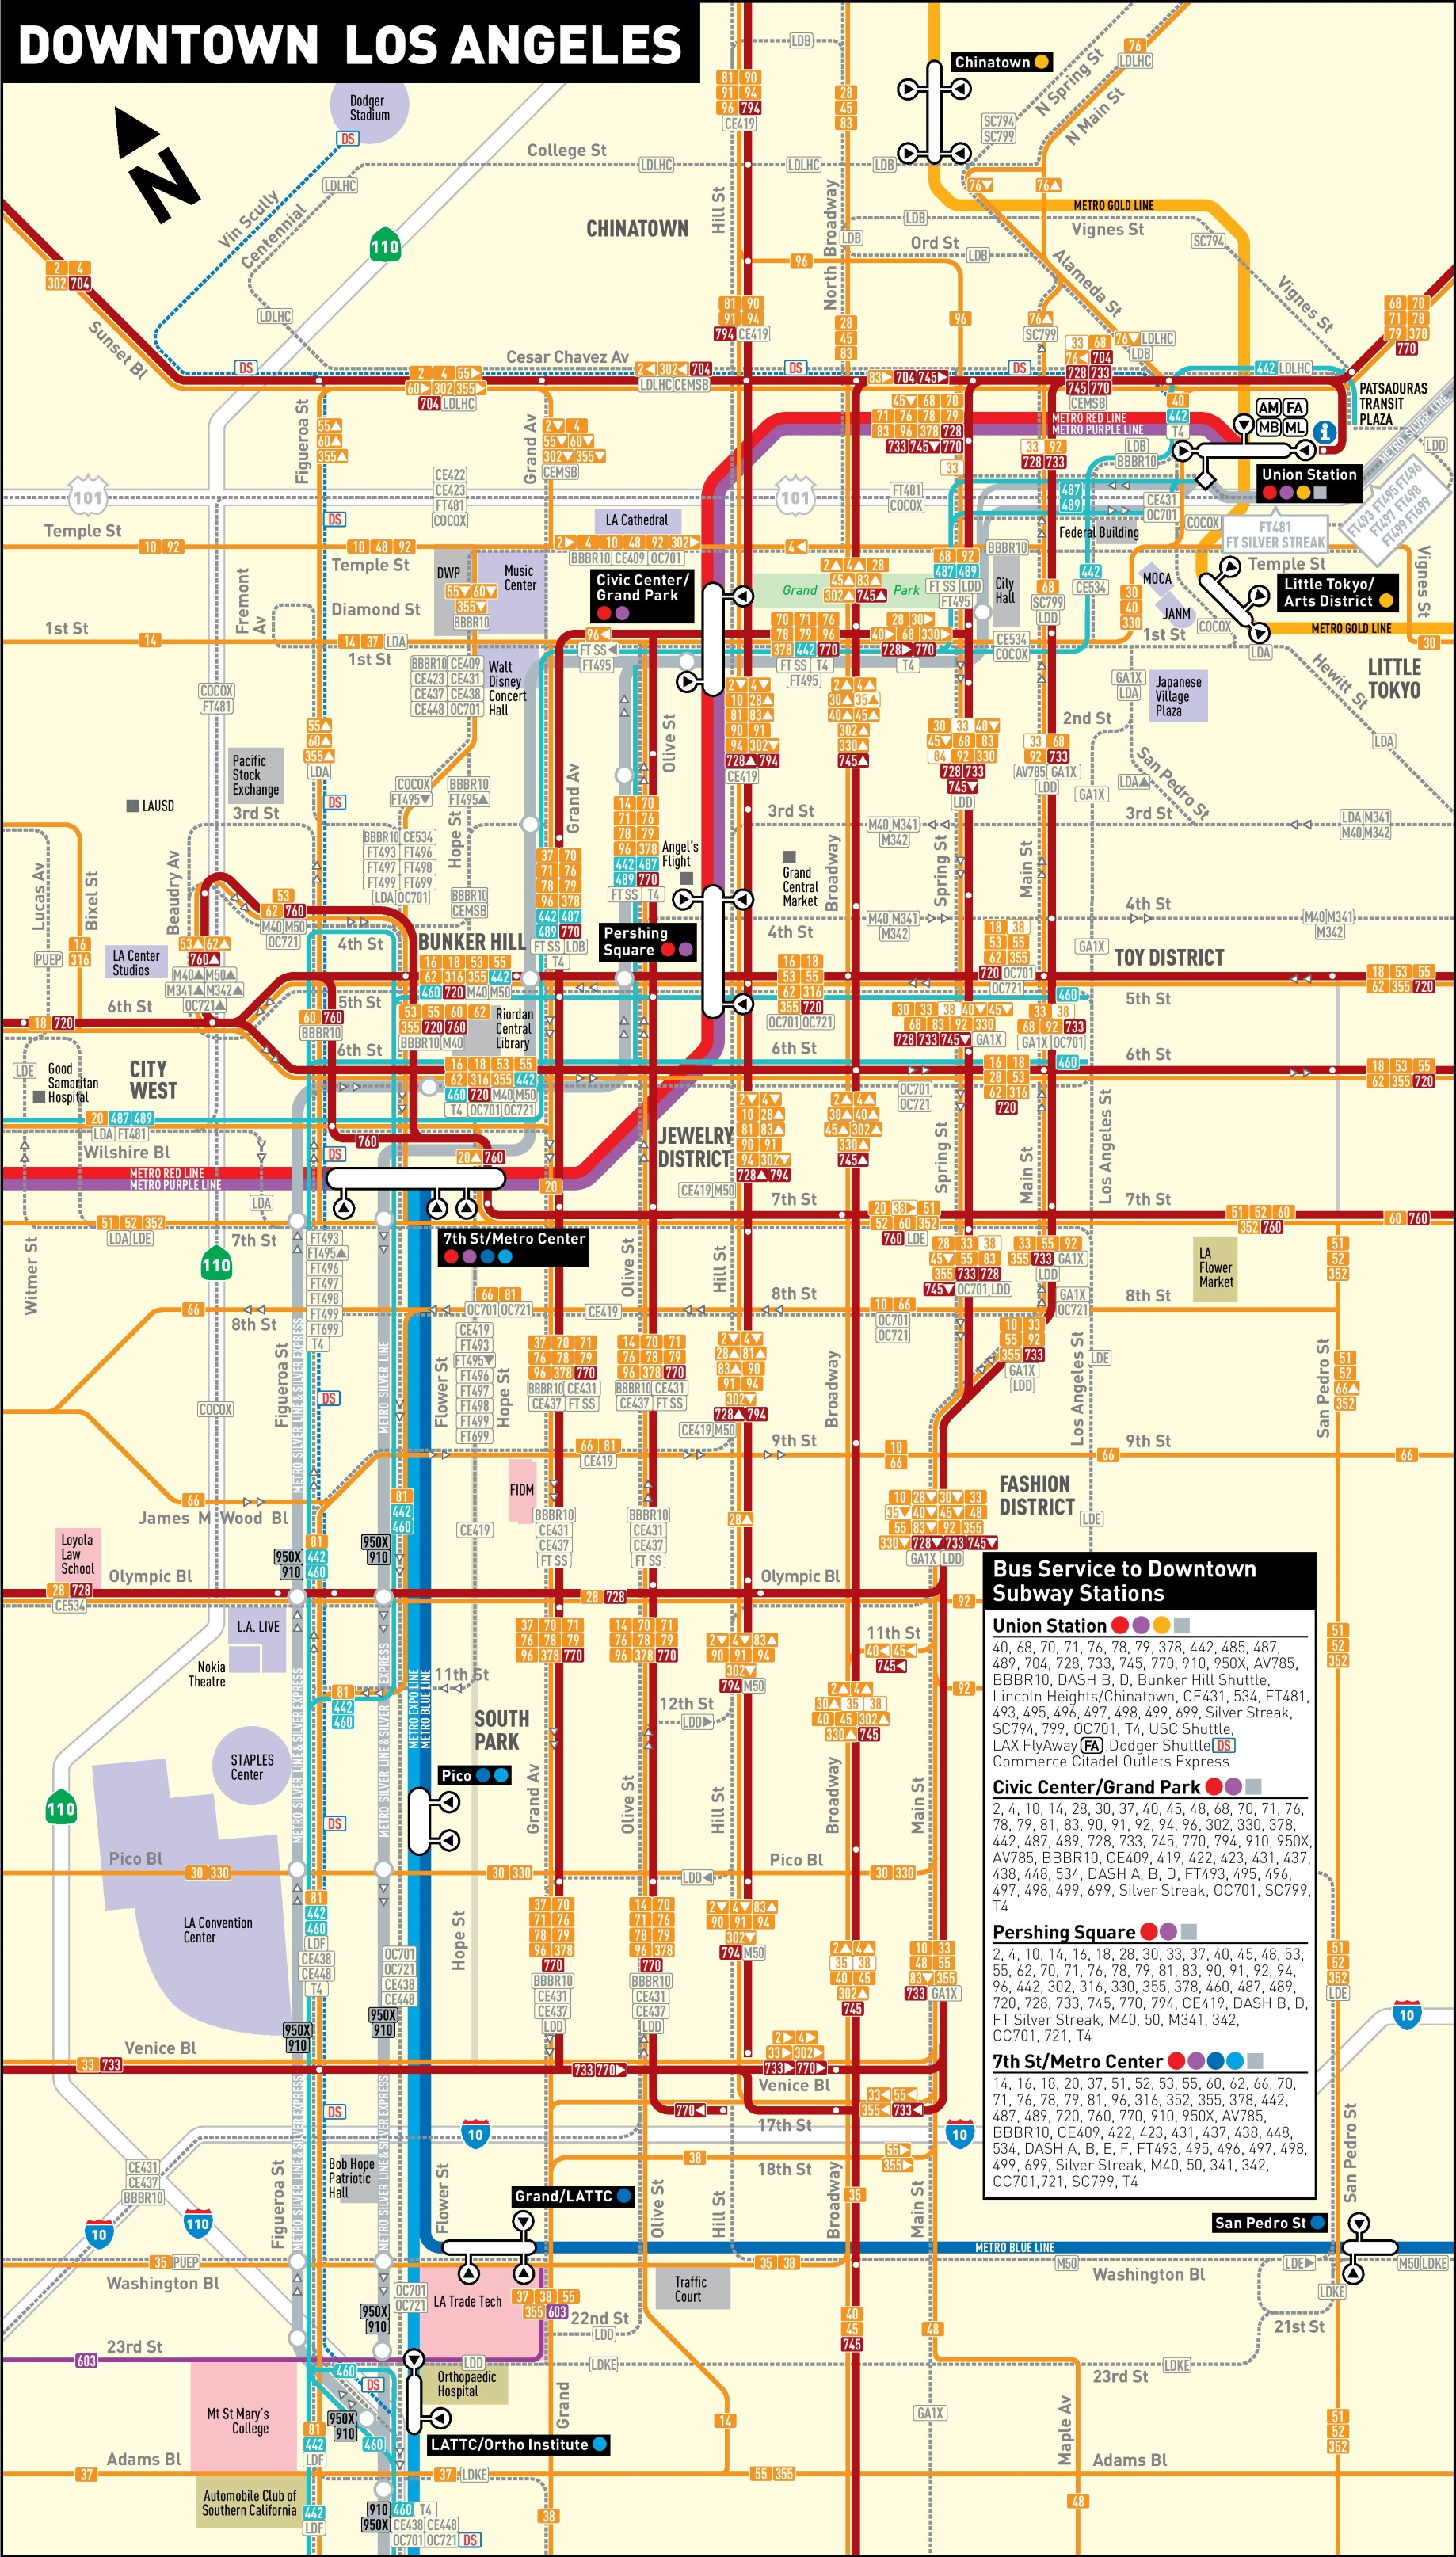 Los Angeles downtown transport map on map downtown jackson, little tokyo, redondo beach, walt disney concert hall, map downtown hartford, west hollywood, staples center, map downtown augusta, map downtown st. petersburg, los angeles international airport, map hancock park, orange county, map downtown mobile, map downtown las cruces, los angeles river, map downtown columbia, skid row, map downtown wilmington, map antelope valley, map downtown jacksonville, map downtown washington, map downtown portsmouth, beverly hills, map downtown st. louis, olvera street, map downtown sydney, los angeles county, southern california, bunker hill, map downtown saint paul, map downtown albany, map downtown reykjavik, map downtown flint, south park, map of la,